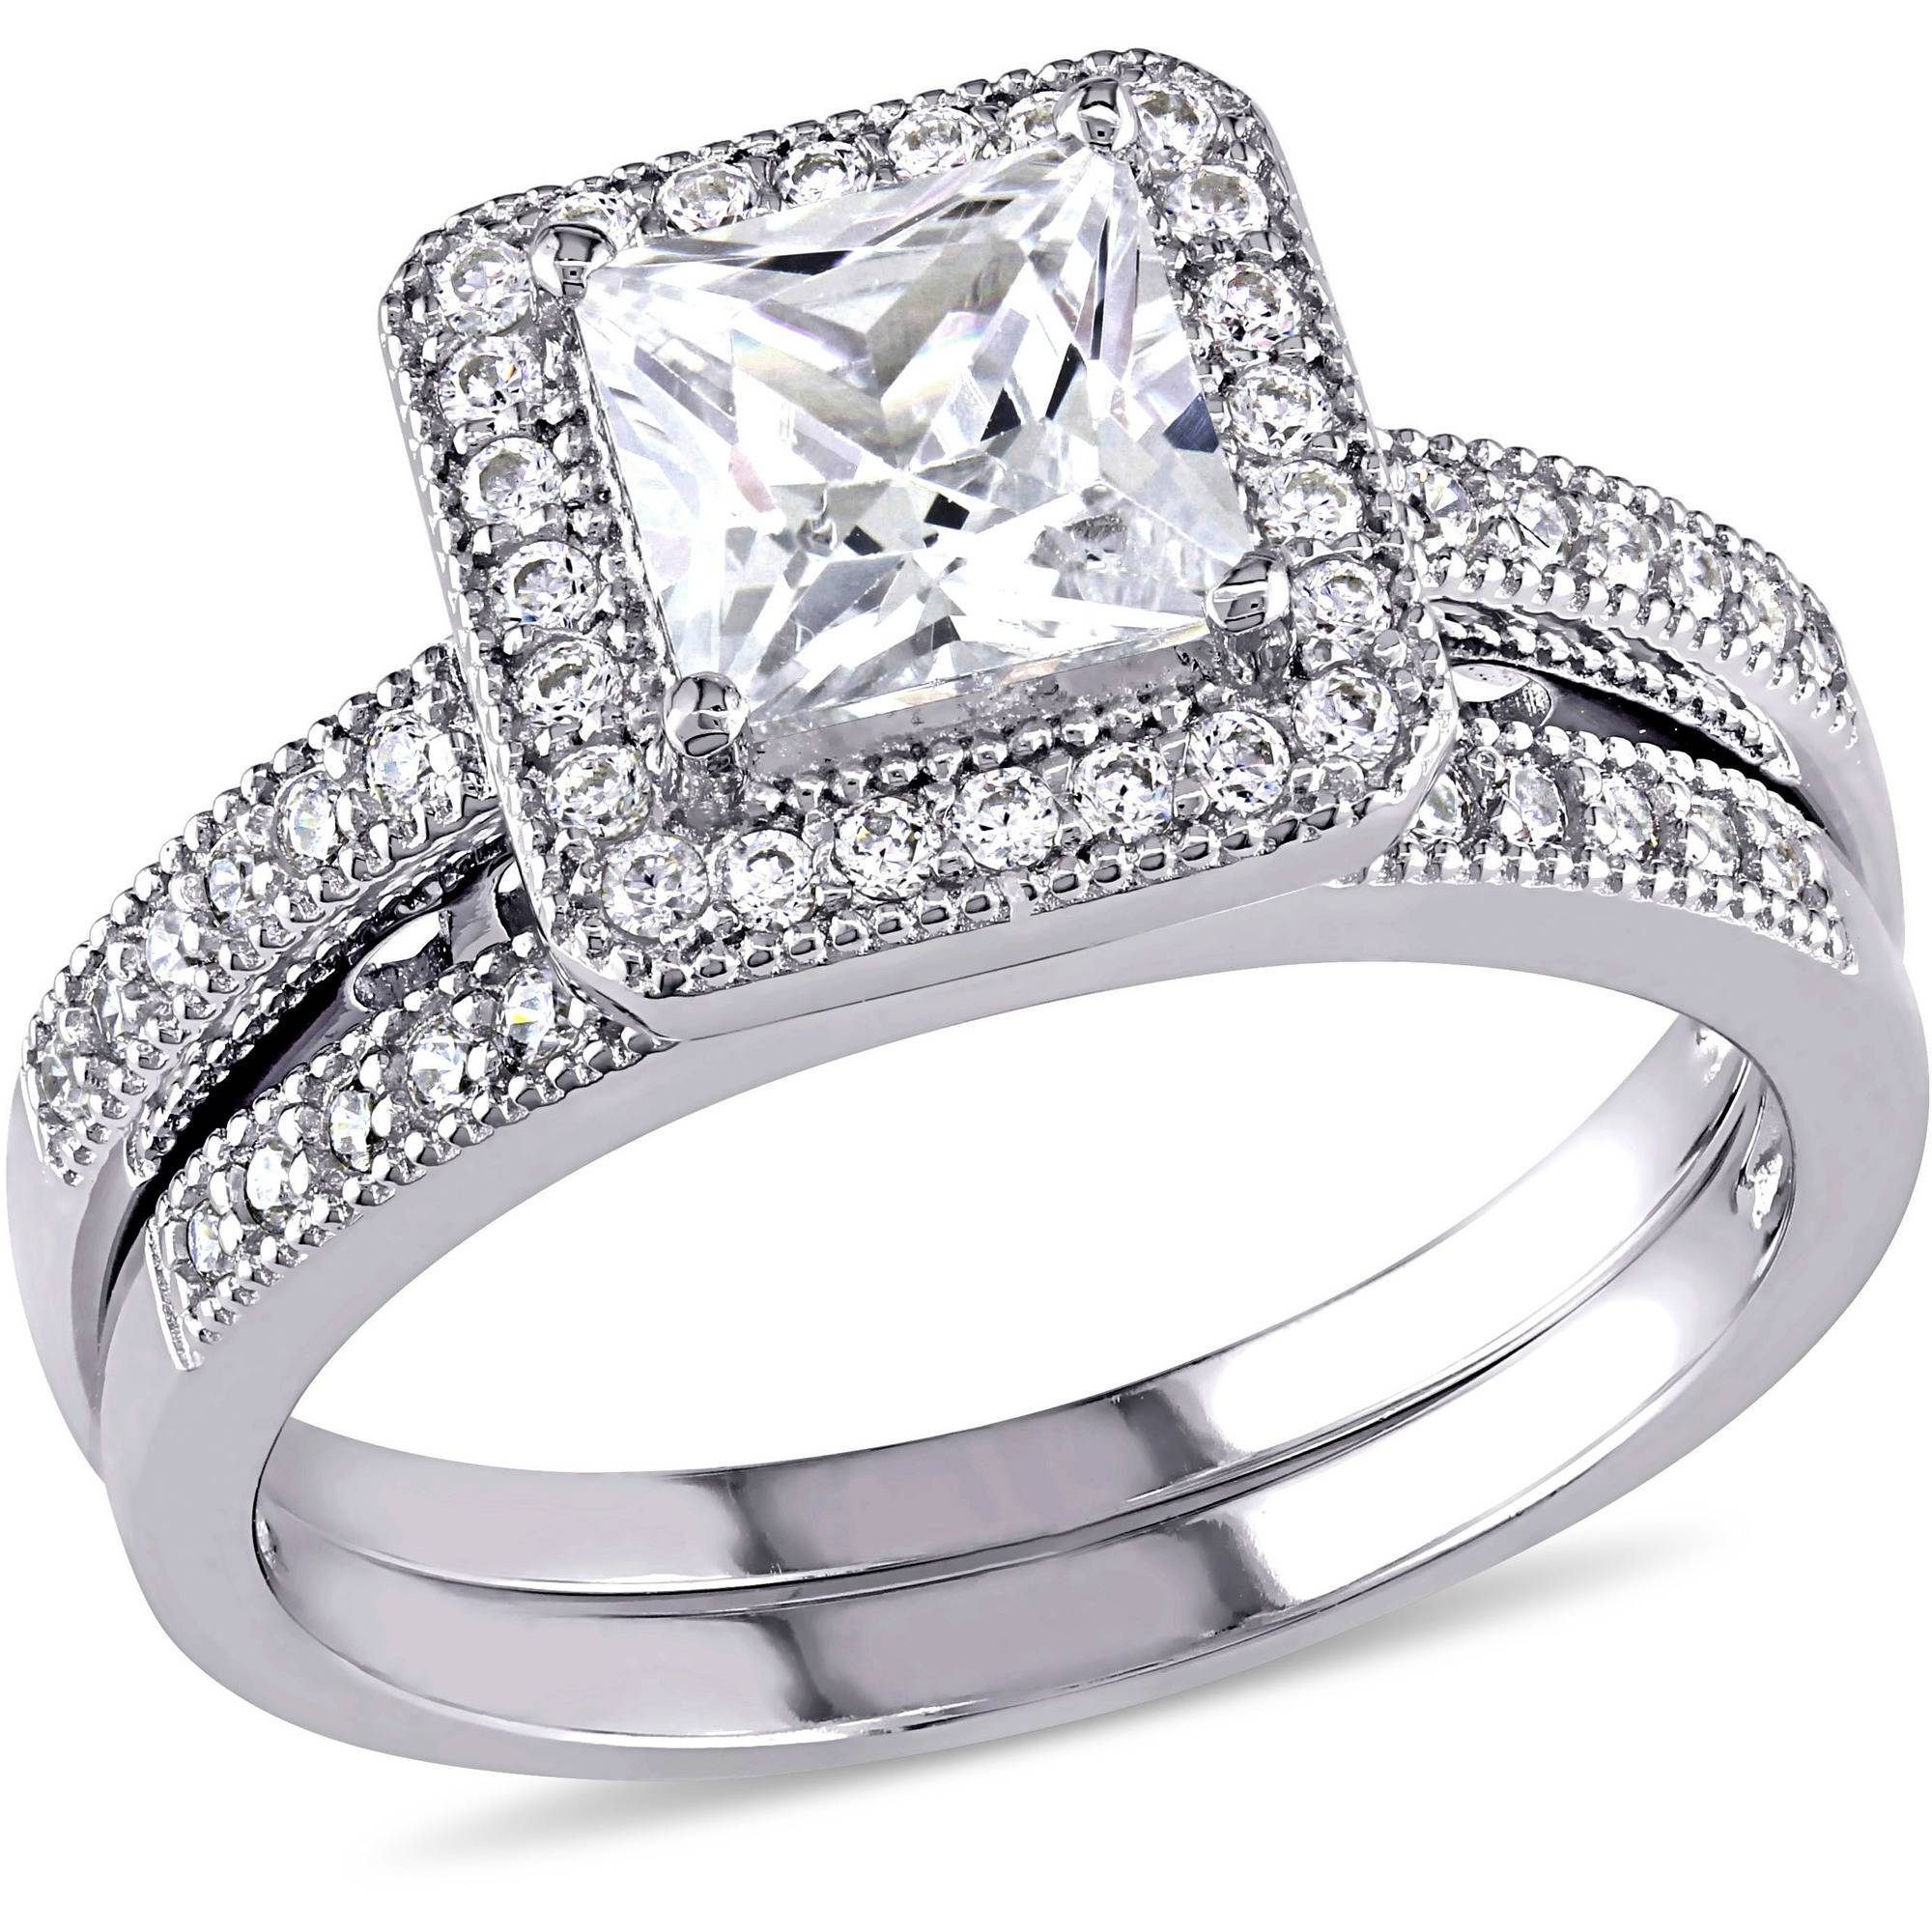 15 photo of walmart mens engagement rings for Walmart wedding rings